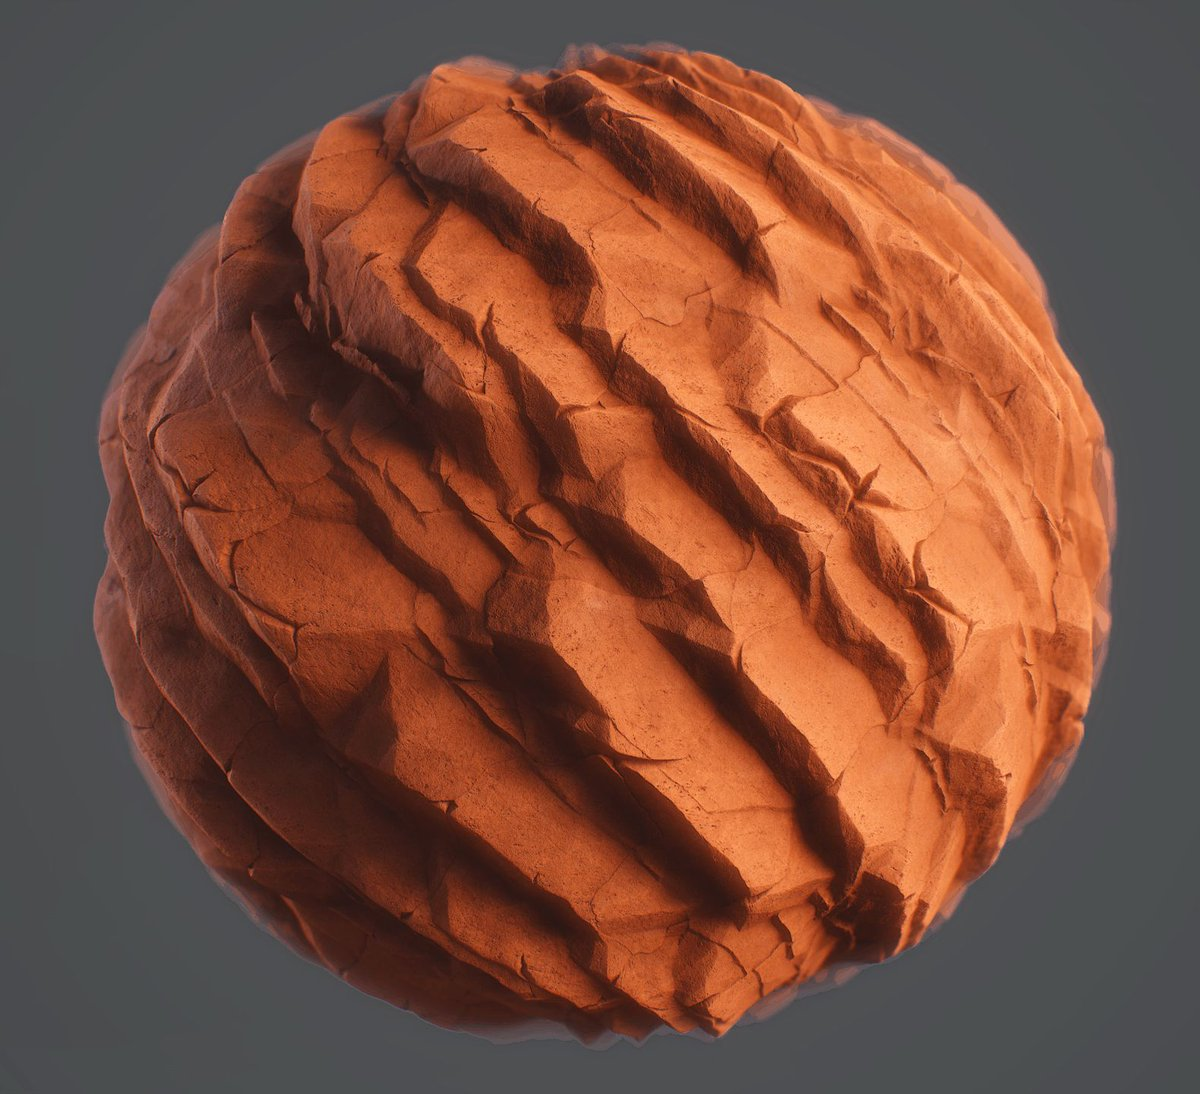 Flippednormals On Twitter Substance Designer Material Rock Pack By Michal Piekarski The Product Contains 8 Textures Pbr 8k Resolution Made From Scratch In A Substance Designer The Products Is Suitable For Use